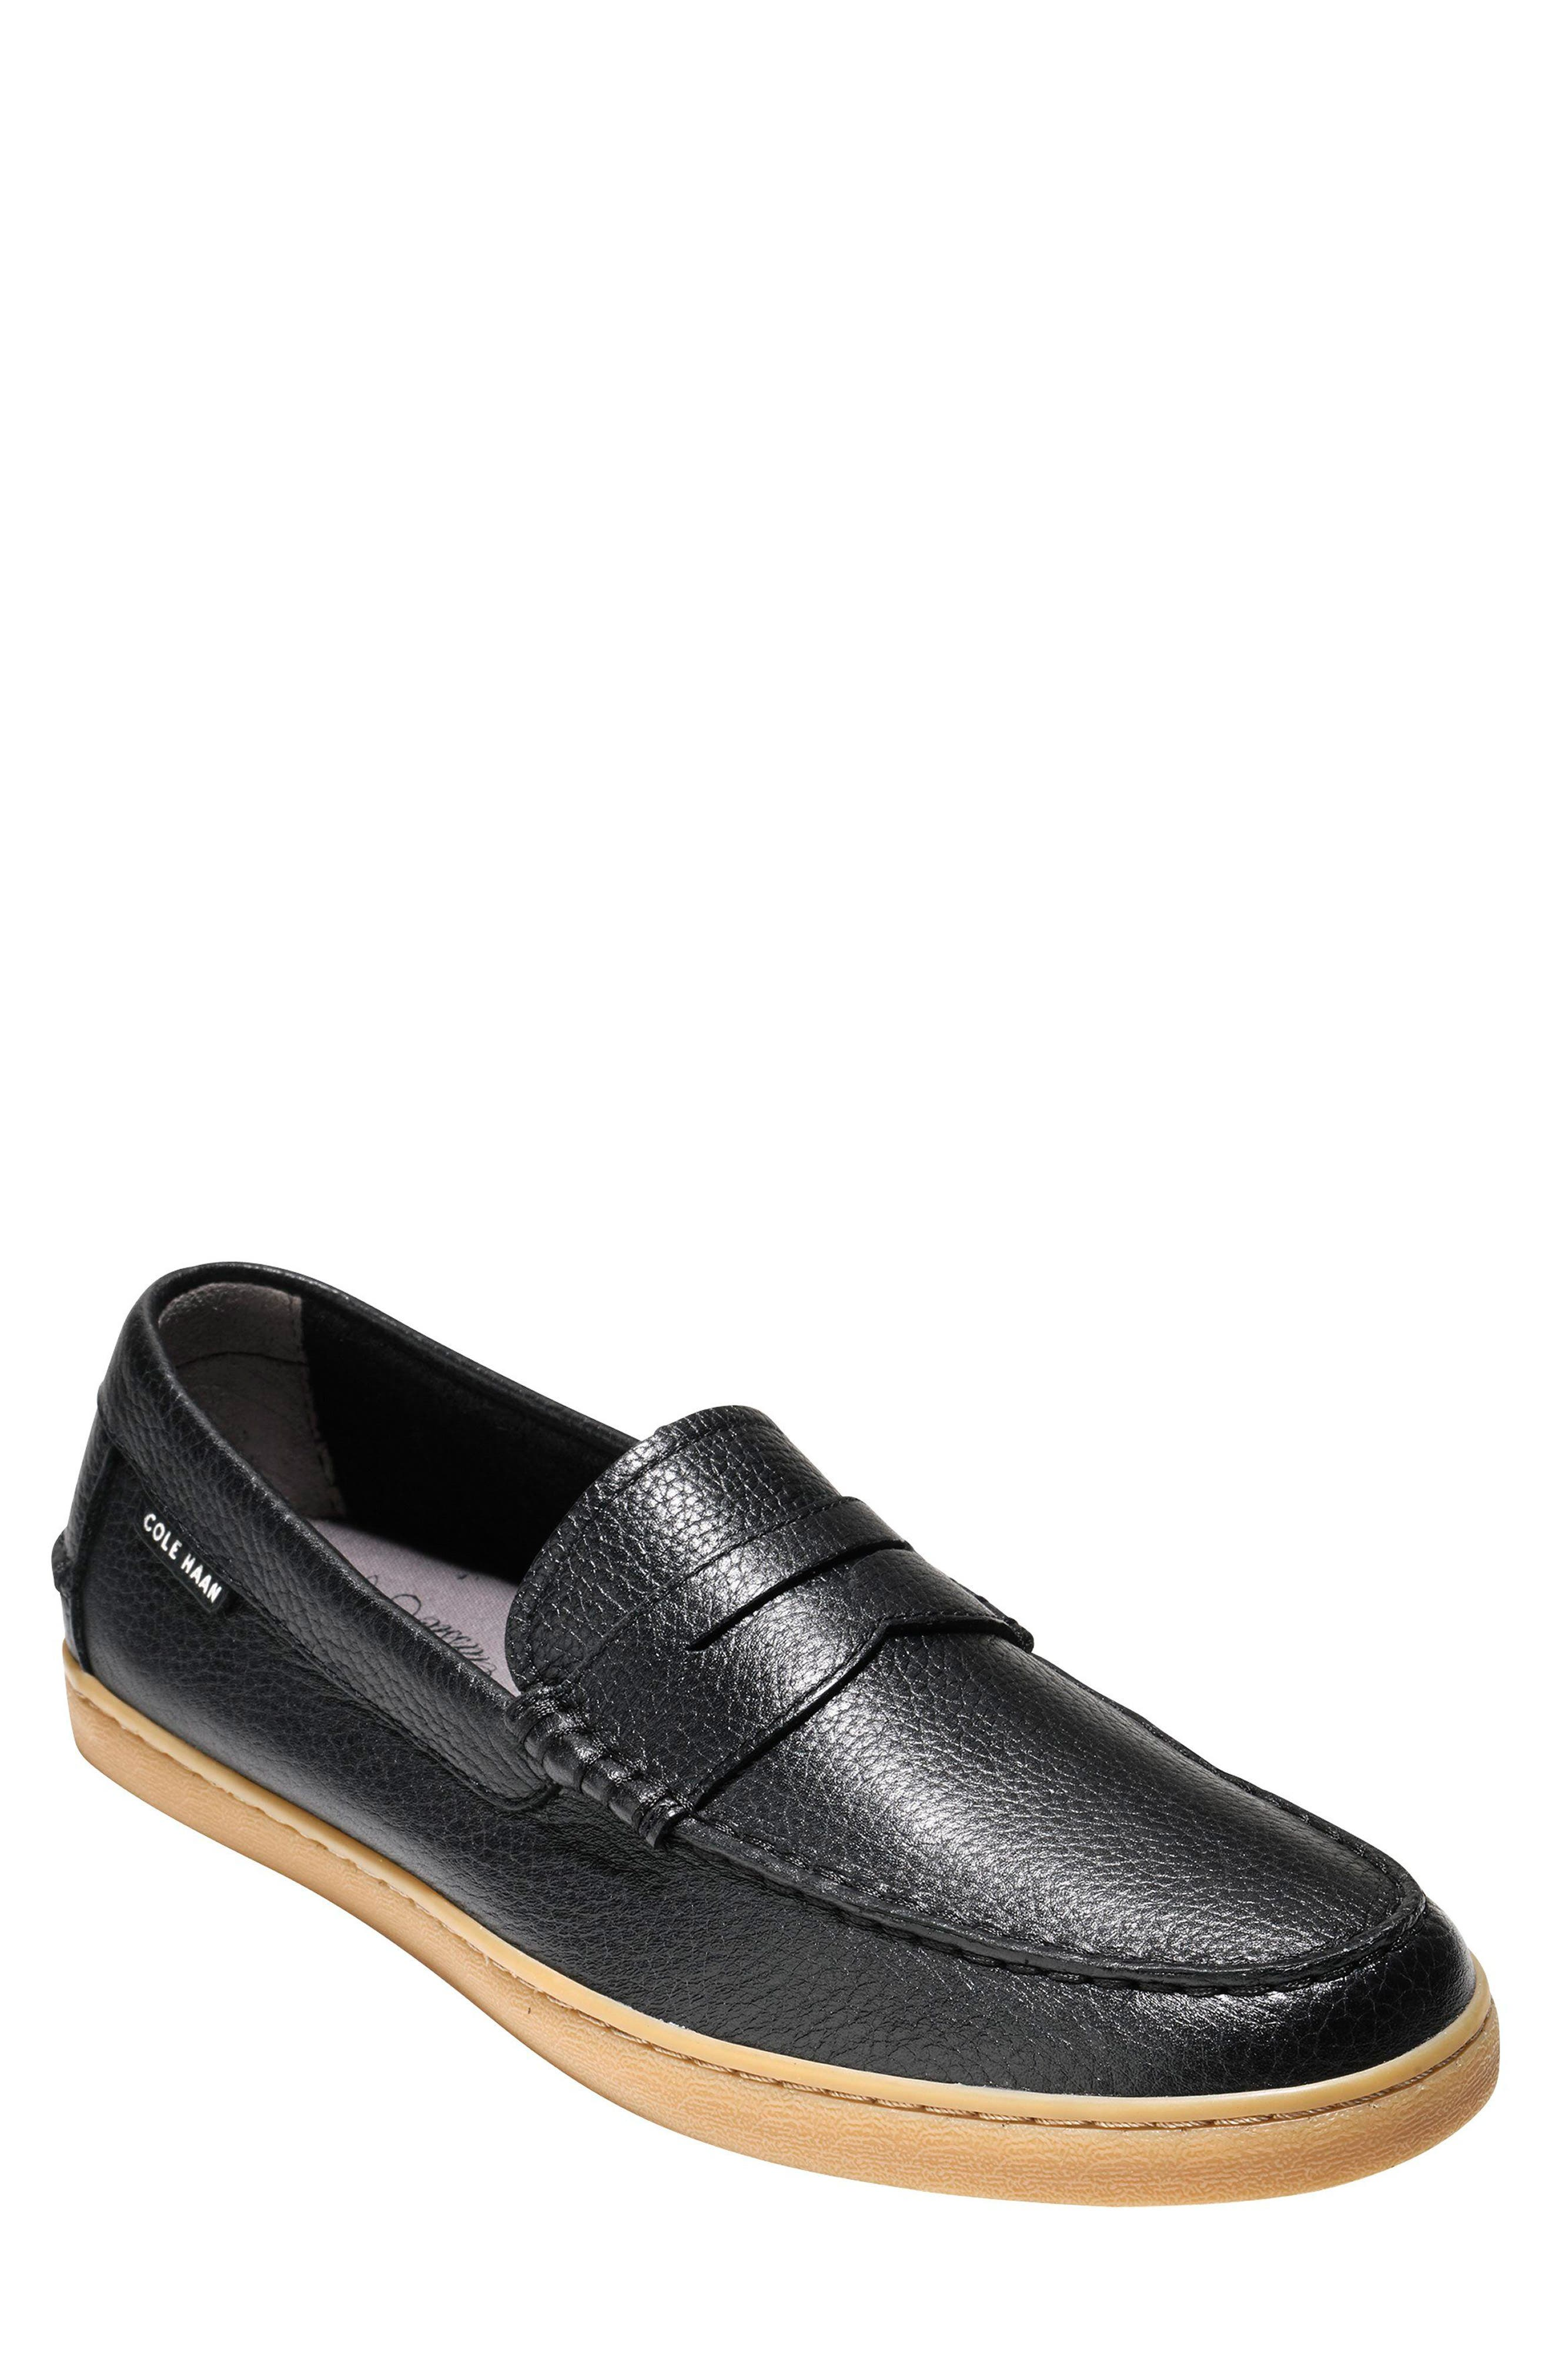 'Pinch Weekend' Penny Loafer,                             Main thumbnail 1, color,                             Black Tumble Leather